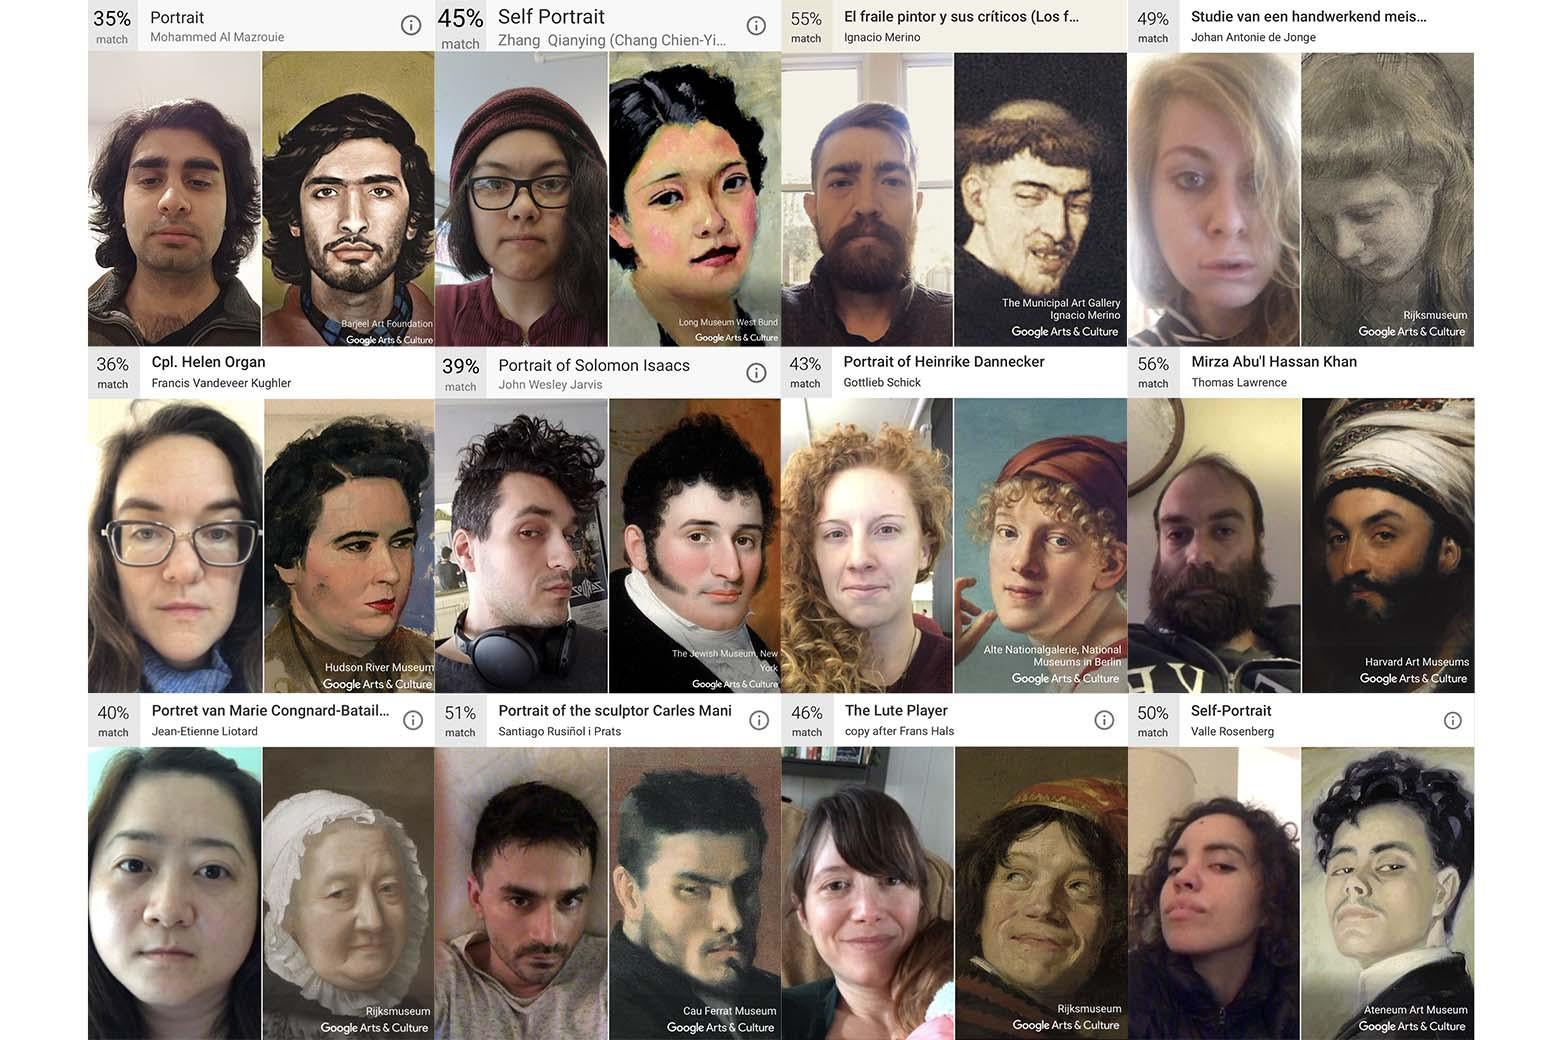 Slate staff results from the Google Arts & Culture App.